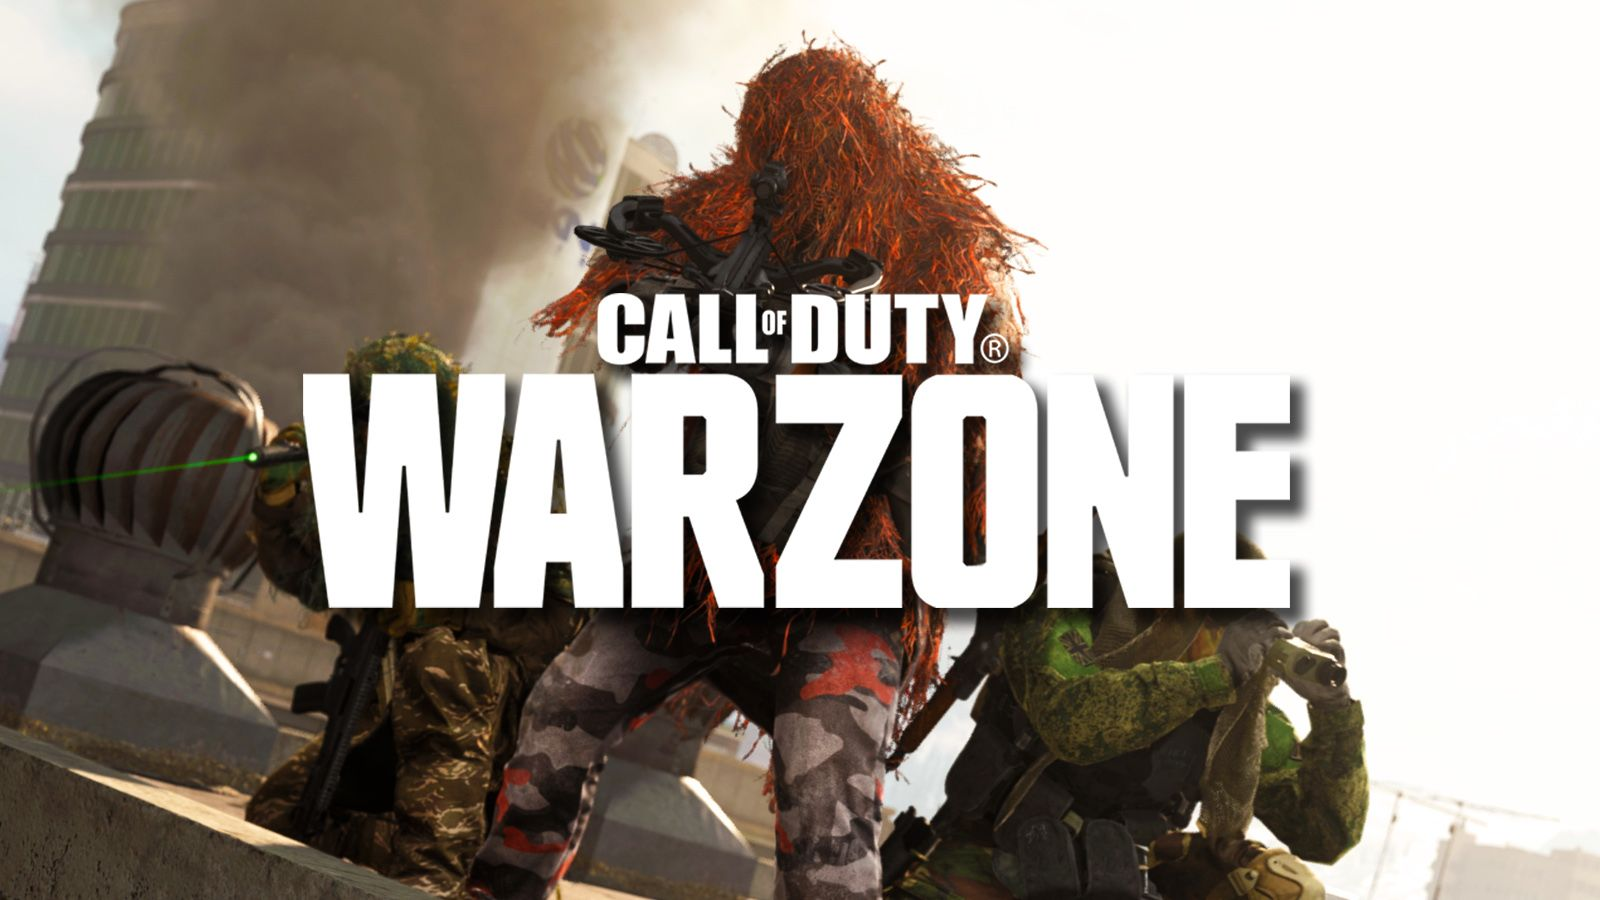 call of duty warzone background 1920x1080